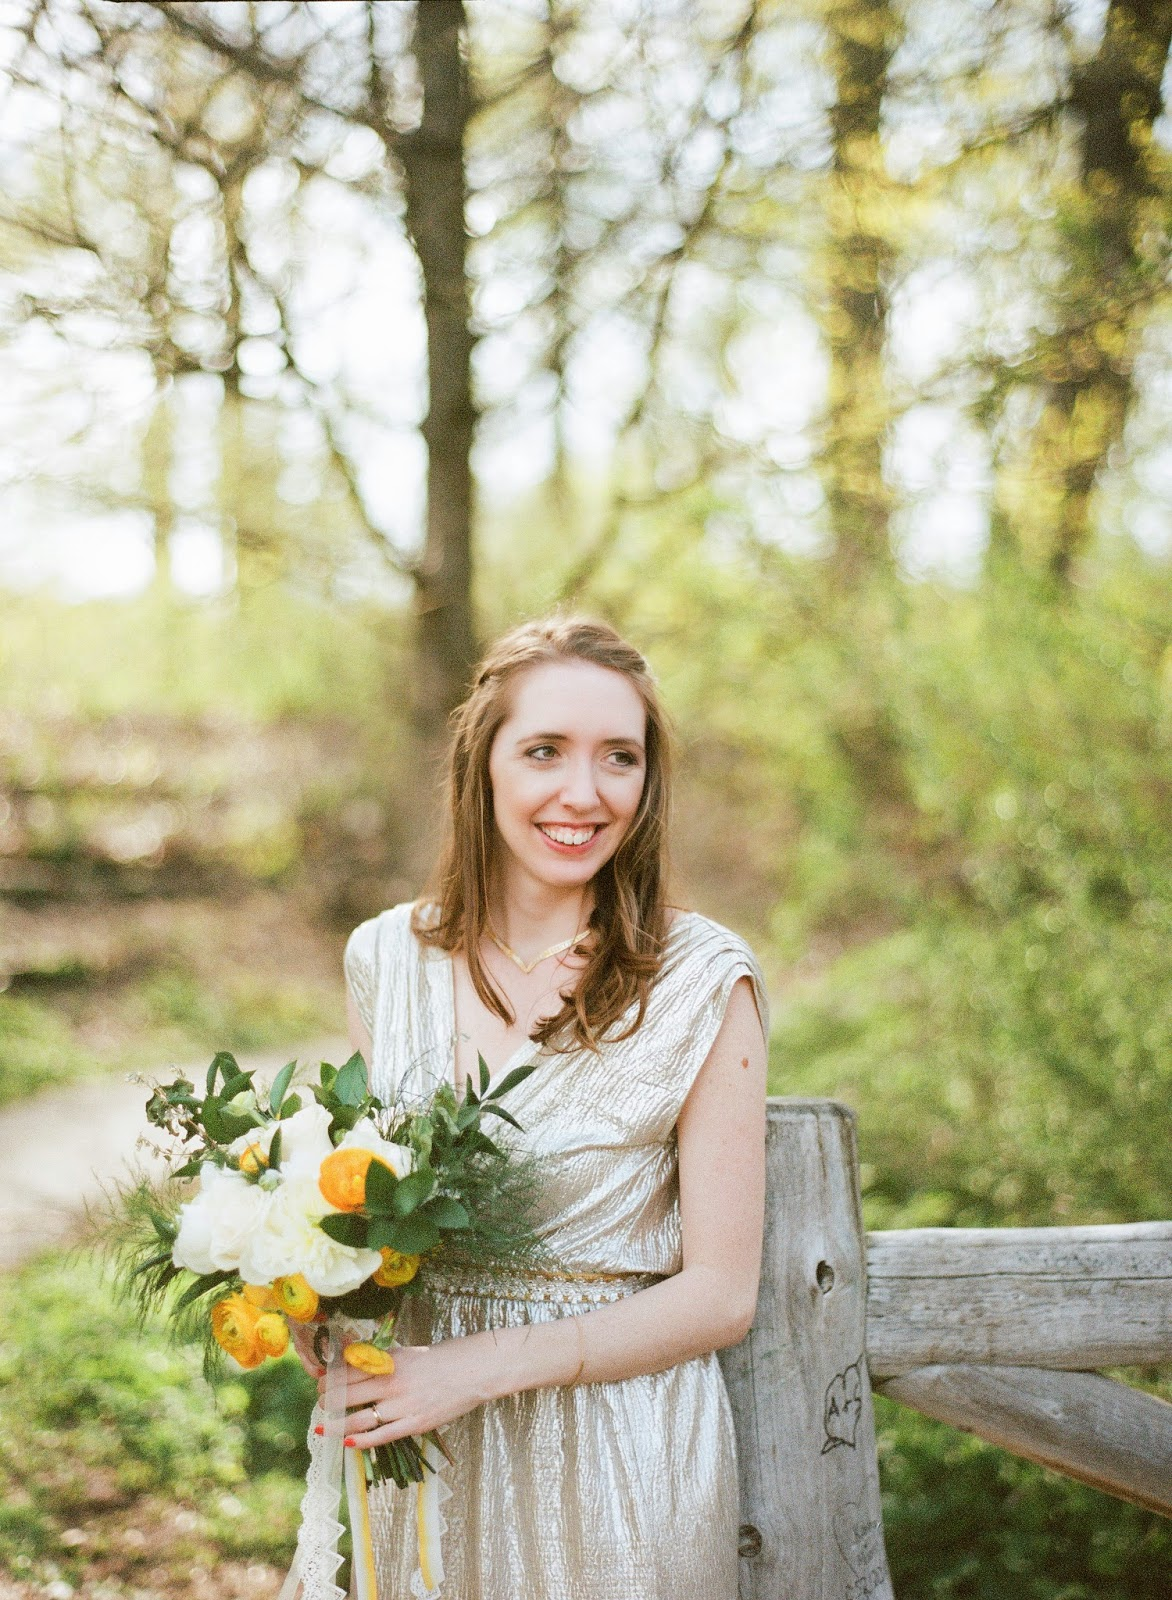 brooklyn, new york bride in a gold dress holding a yellow ranunculus and white peony spring bouquet at her prospect park wedding